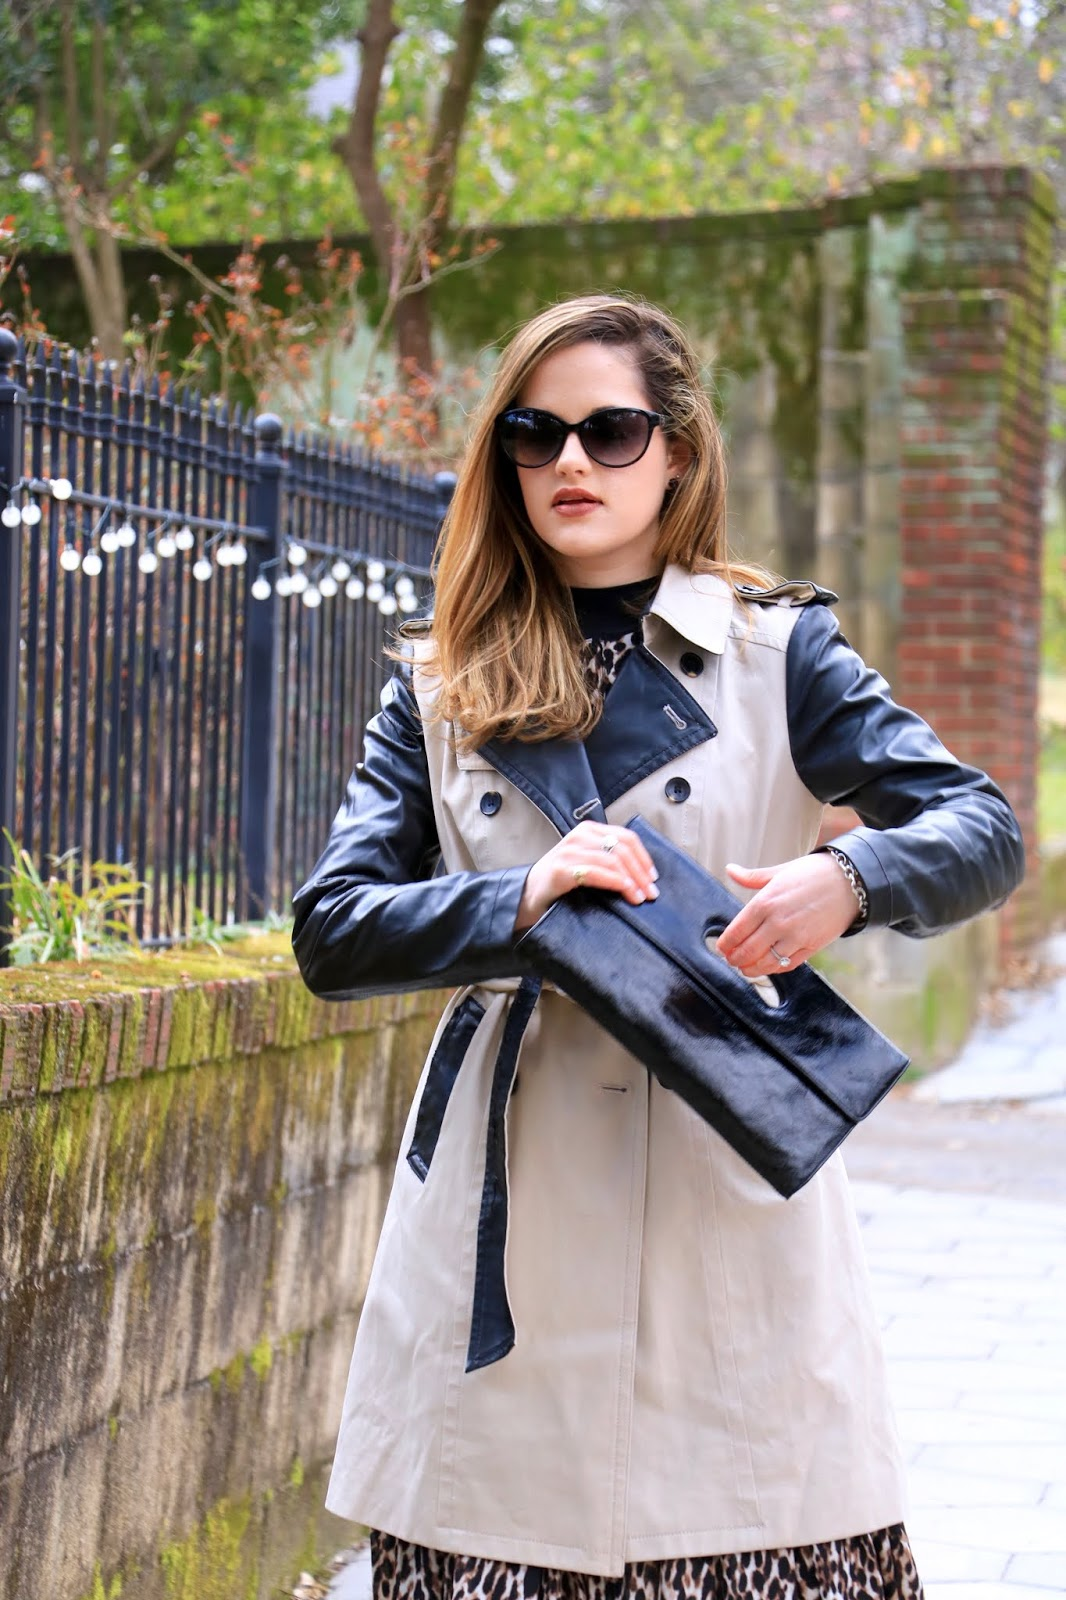 Nyc fashion blogger Kathleen Harper carrying a Hobo black patent leather clutch.